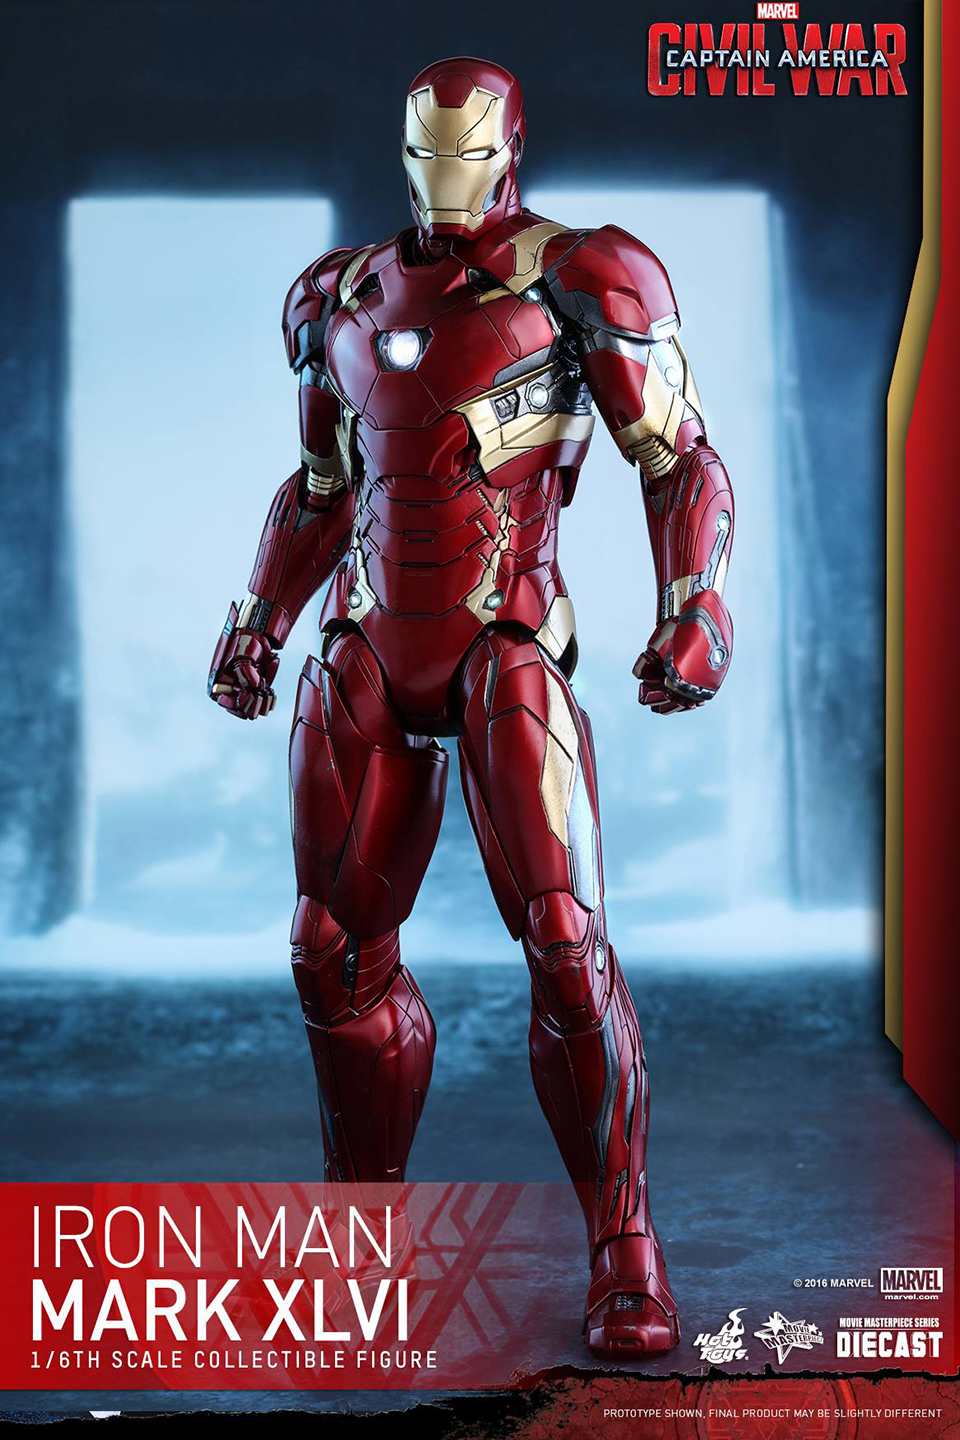 Hot Toys Civil War Iron Man Mk XLVI 1/6 Scale Diecast Action Figure